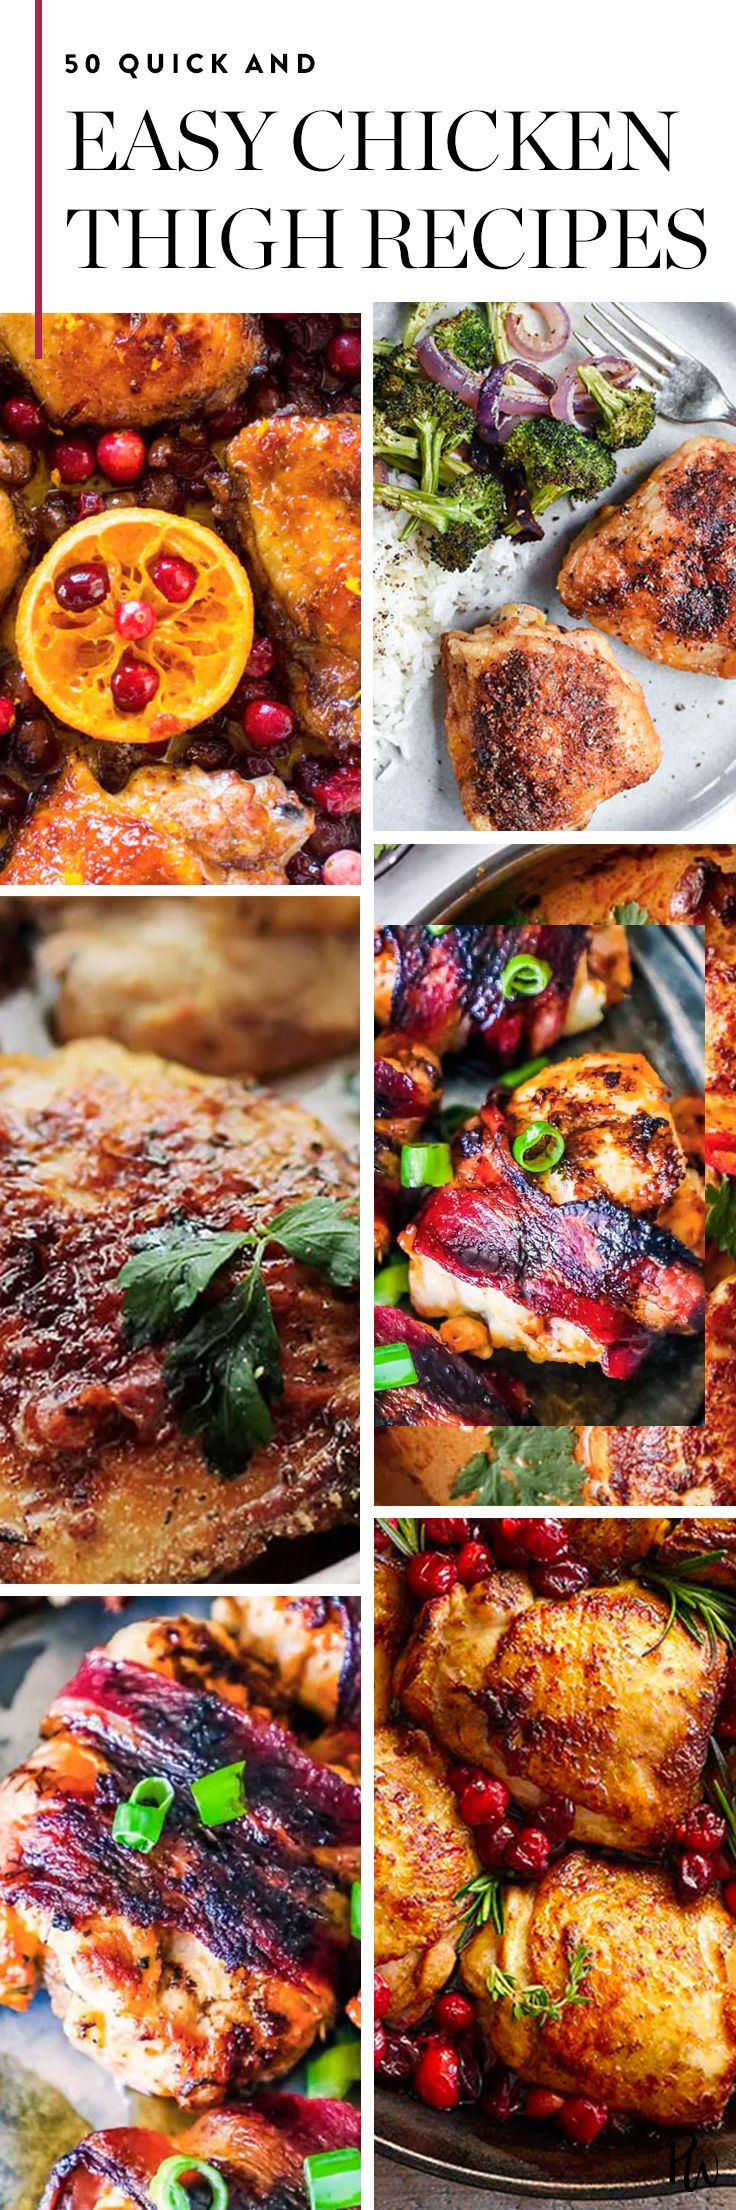 50 Quick and Easy Chicken Thigh Recipes to Whip Up on Weeknights via @PureWow via @PureWow